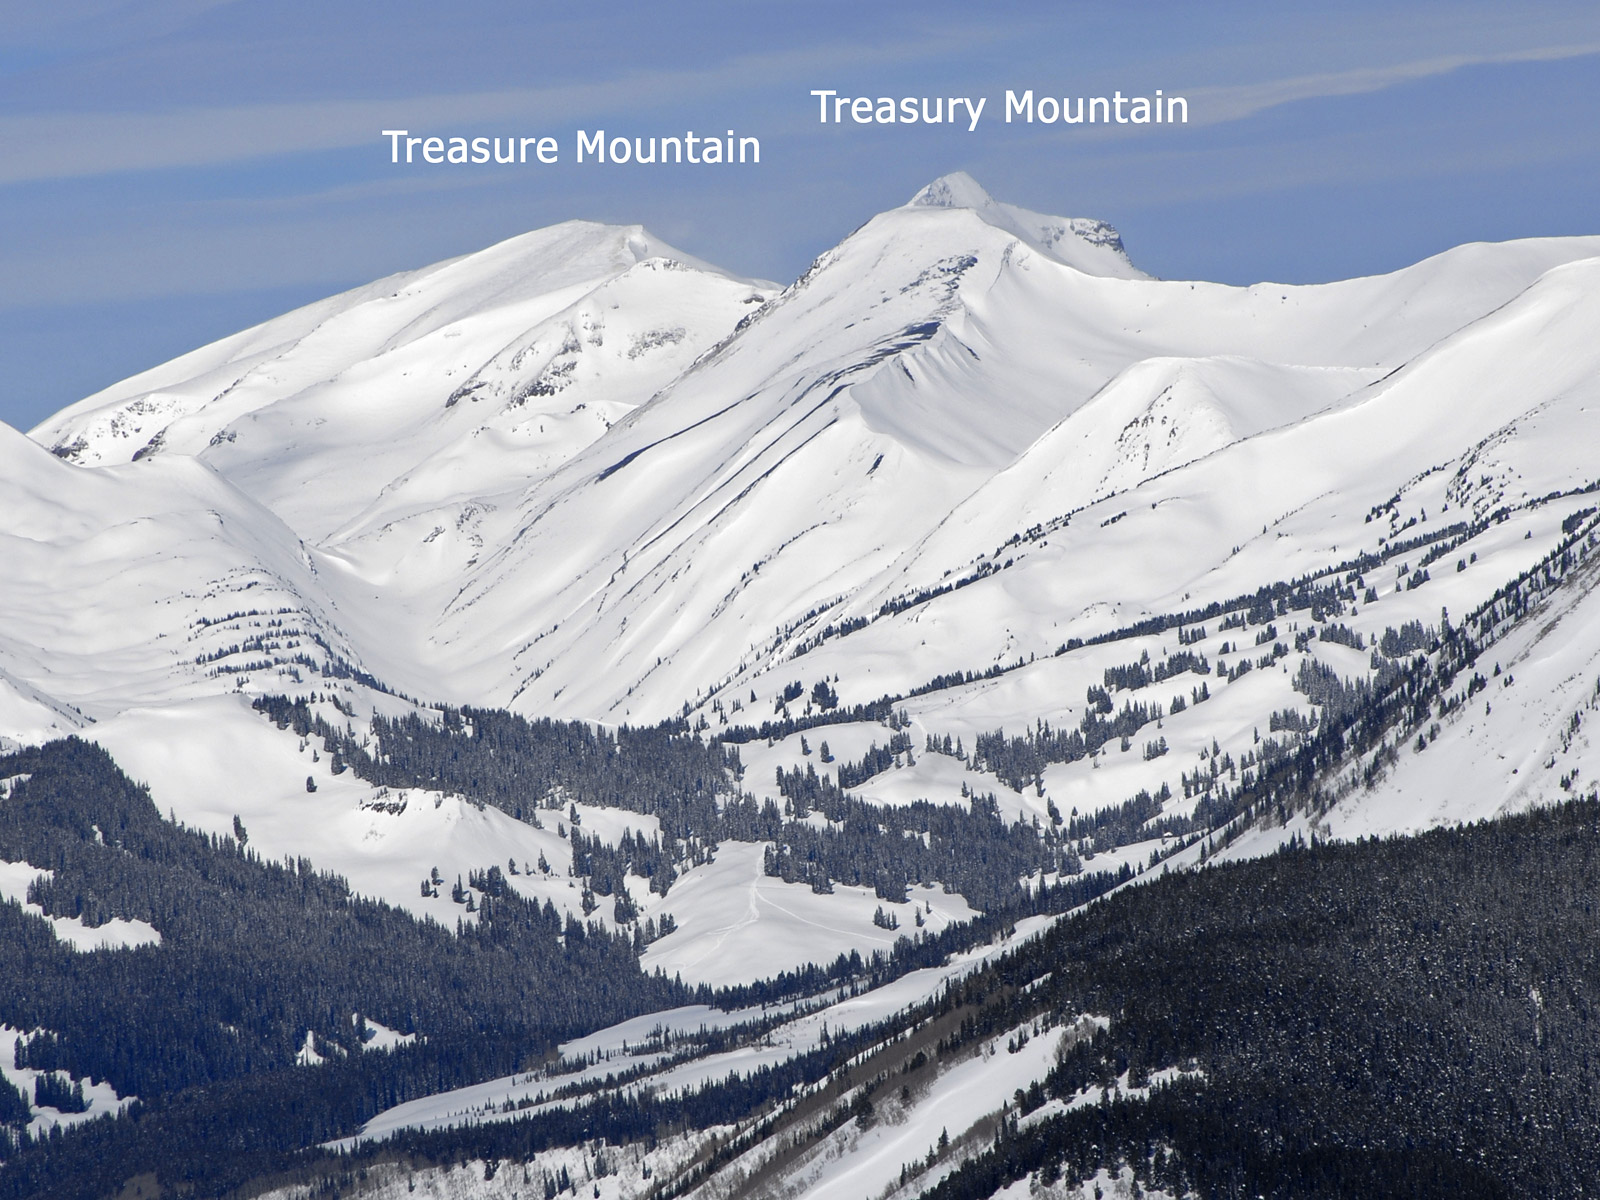 Treasury Mountain